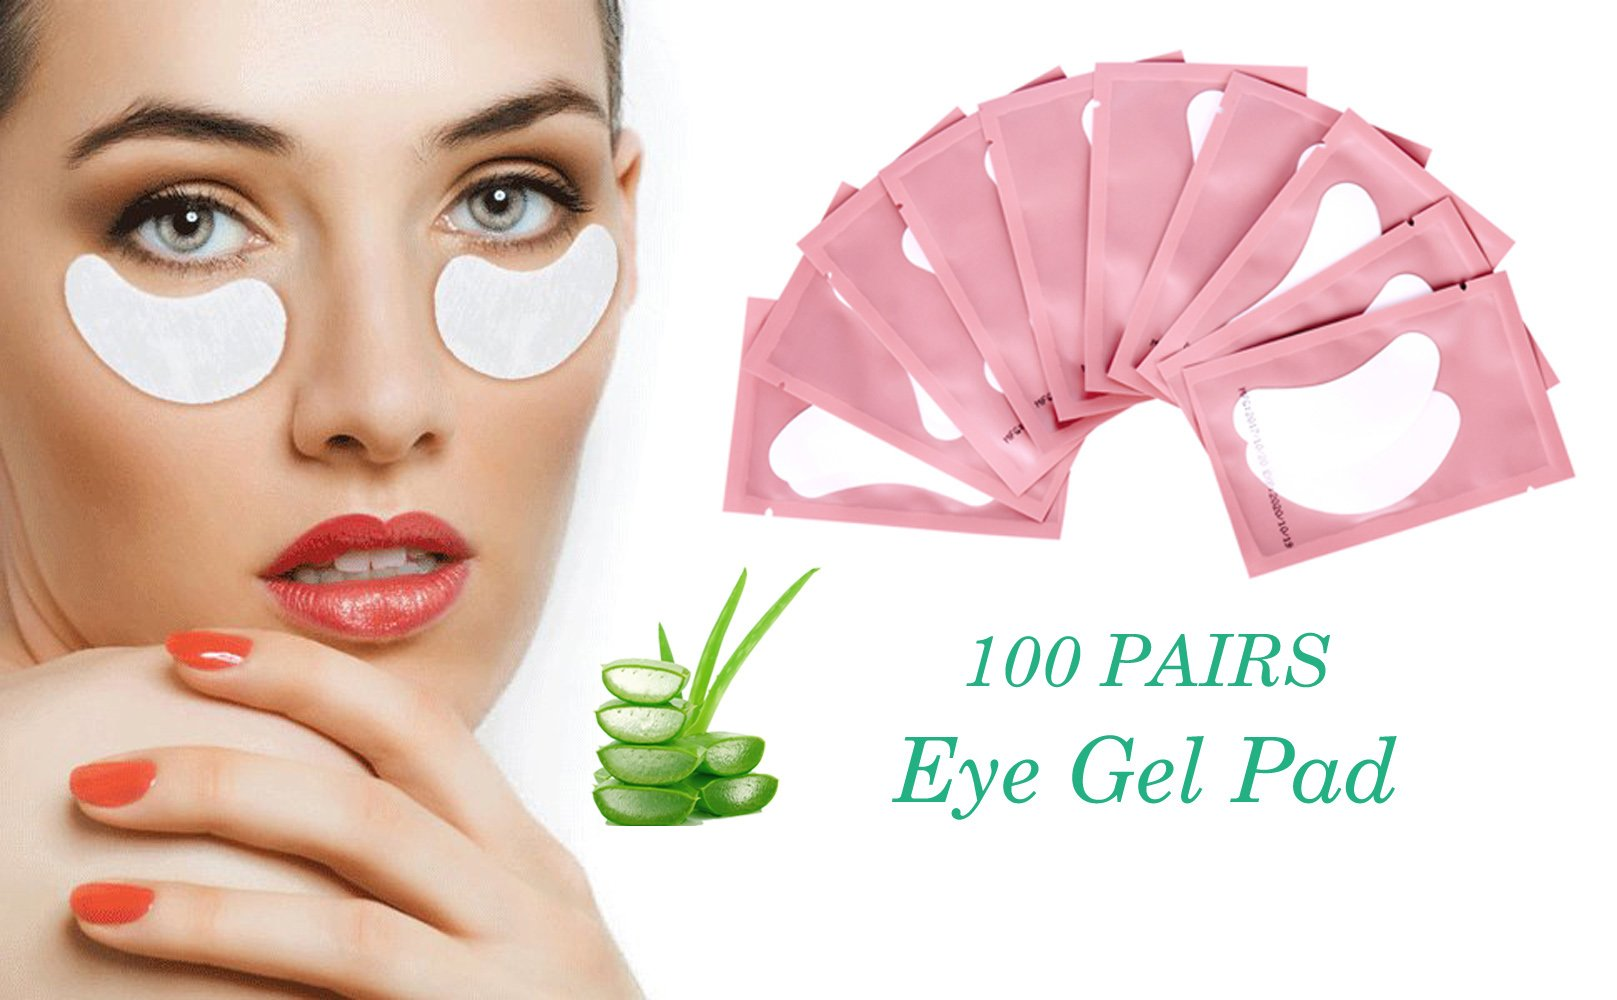 100 Pairs Set Under Eye Pads, Comfy and Cool Under Eye Patches Gel Pad for Eyelash Extensions Eye Mask Beauty Tool (Pink) by Vonsen (Image #3)